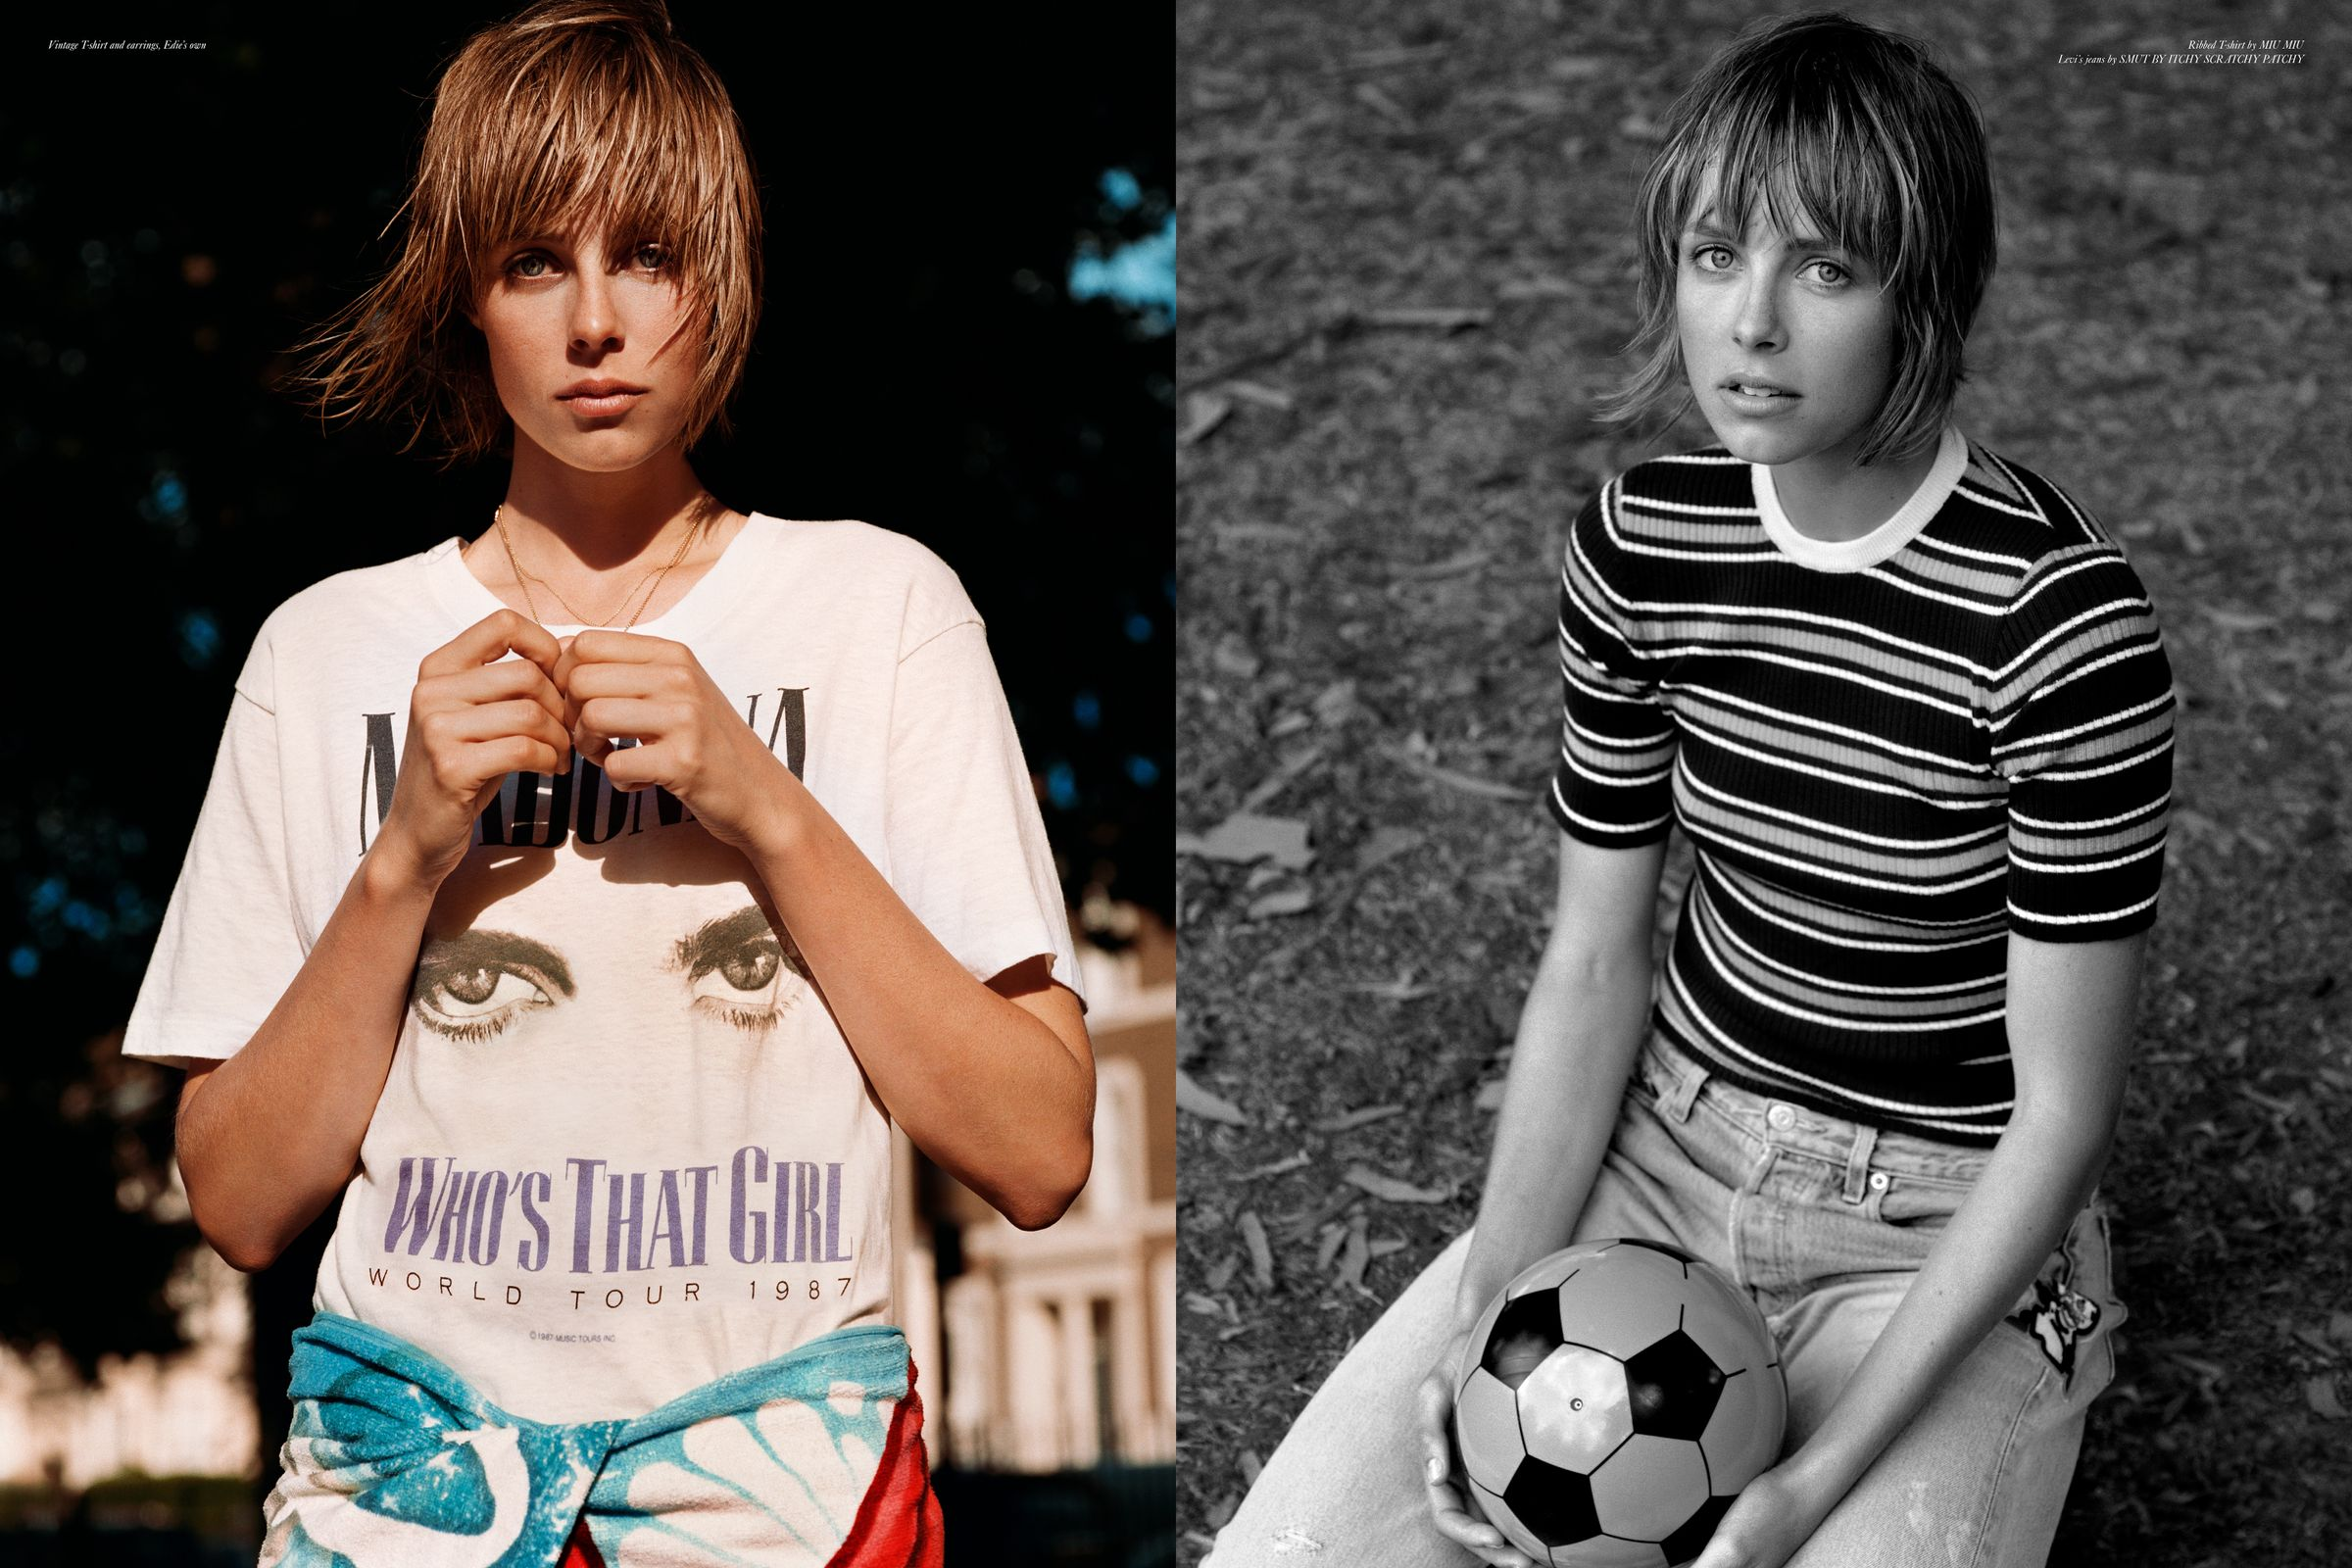 Rika Magazine issue no. 18 Edie Campbell photographed by Alasdair McLellan